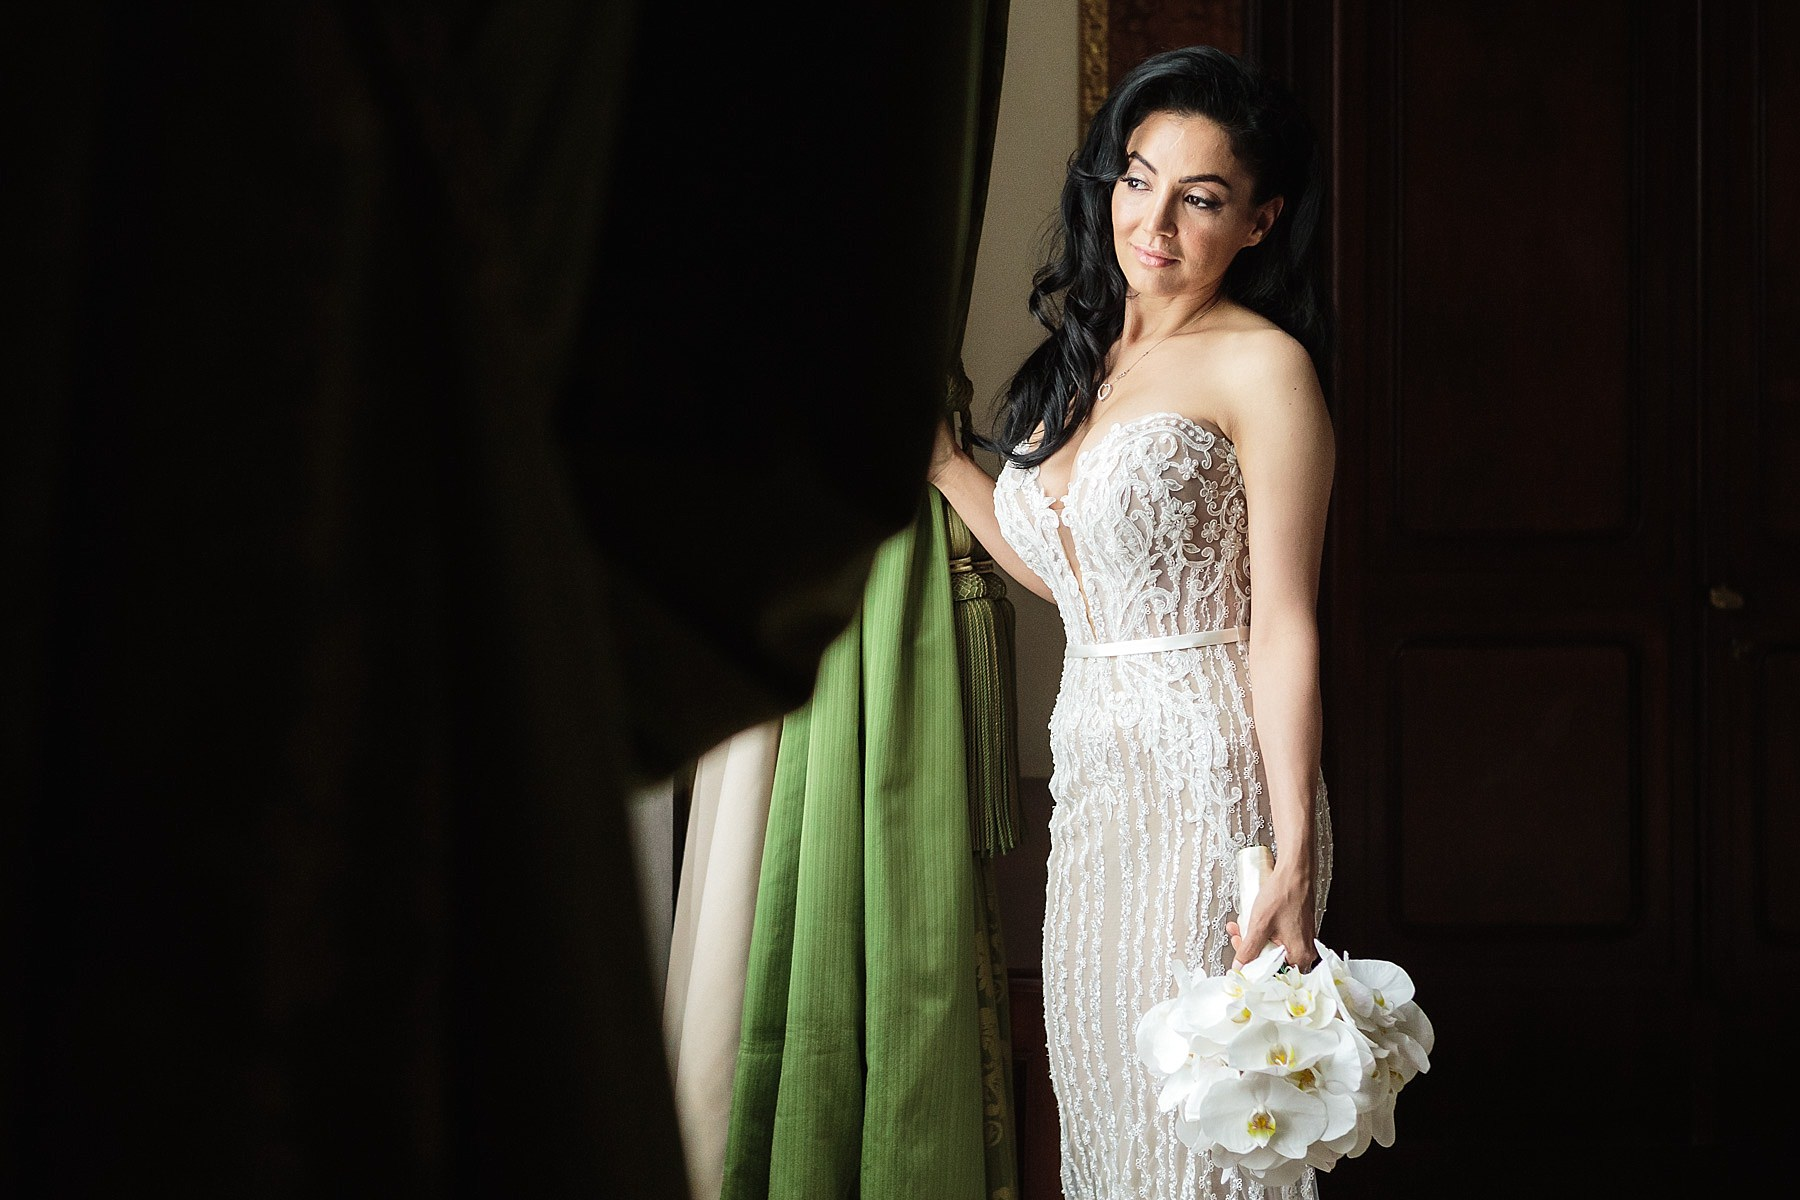 Bride Portrait Four Seasons Hotel Florence - Destination Wedding